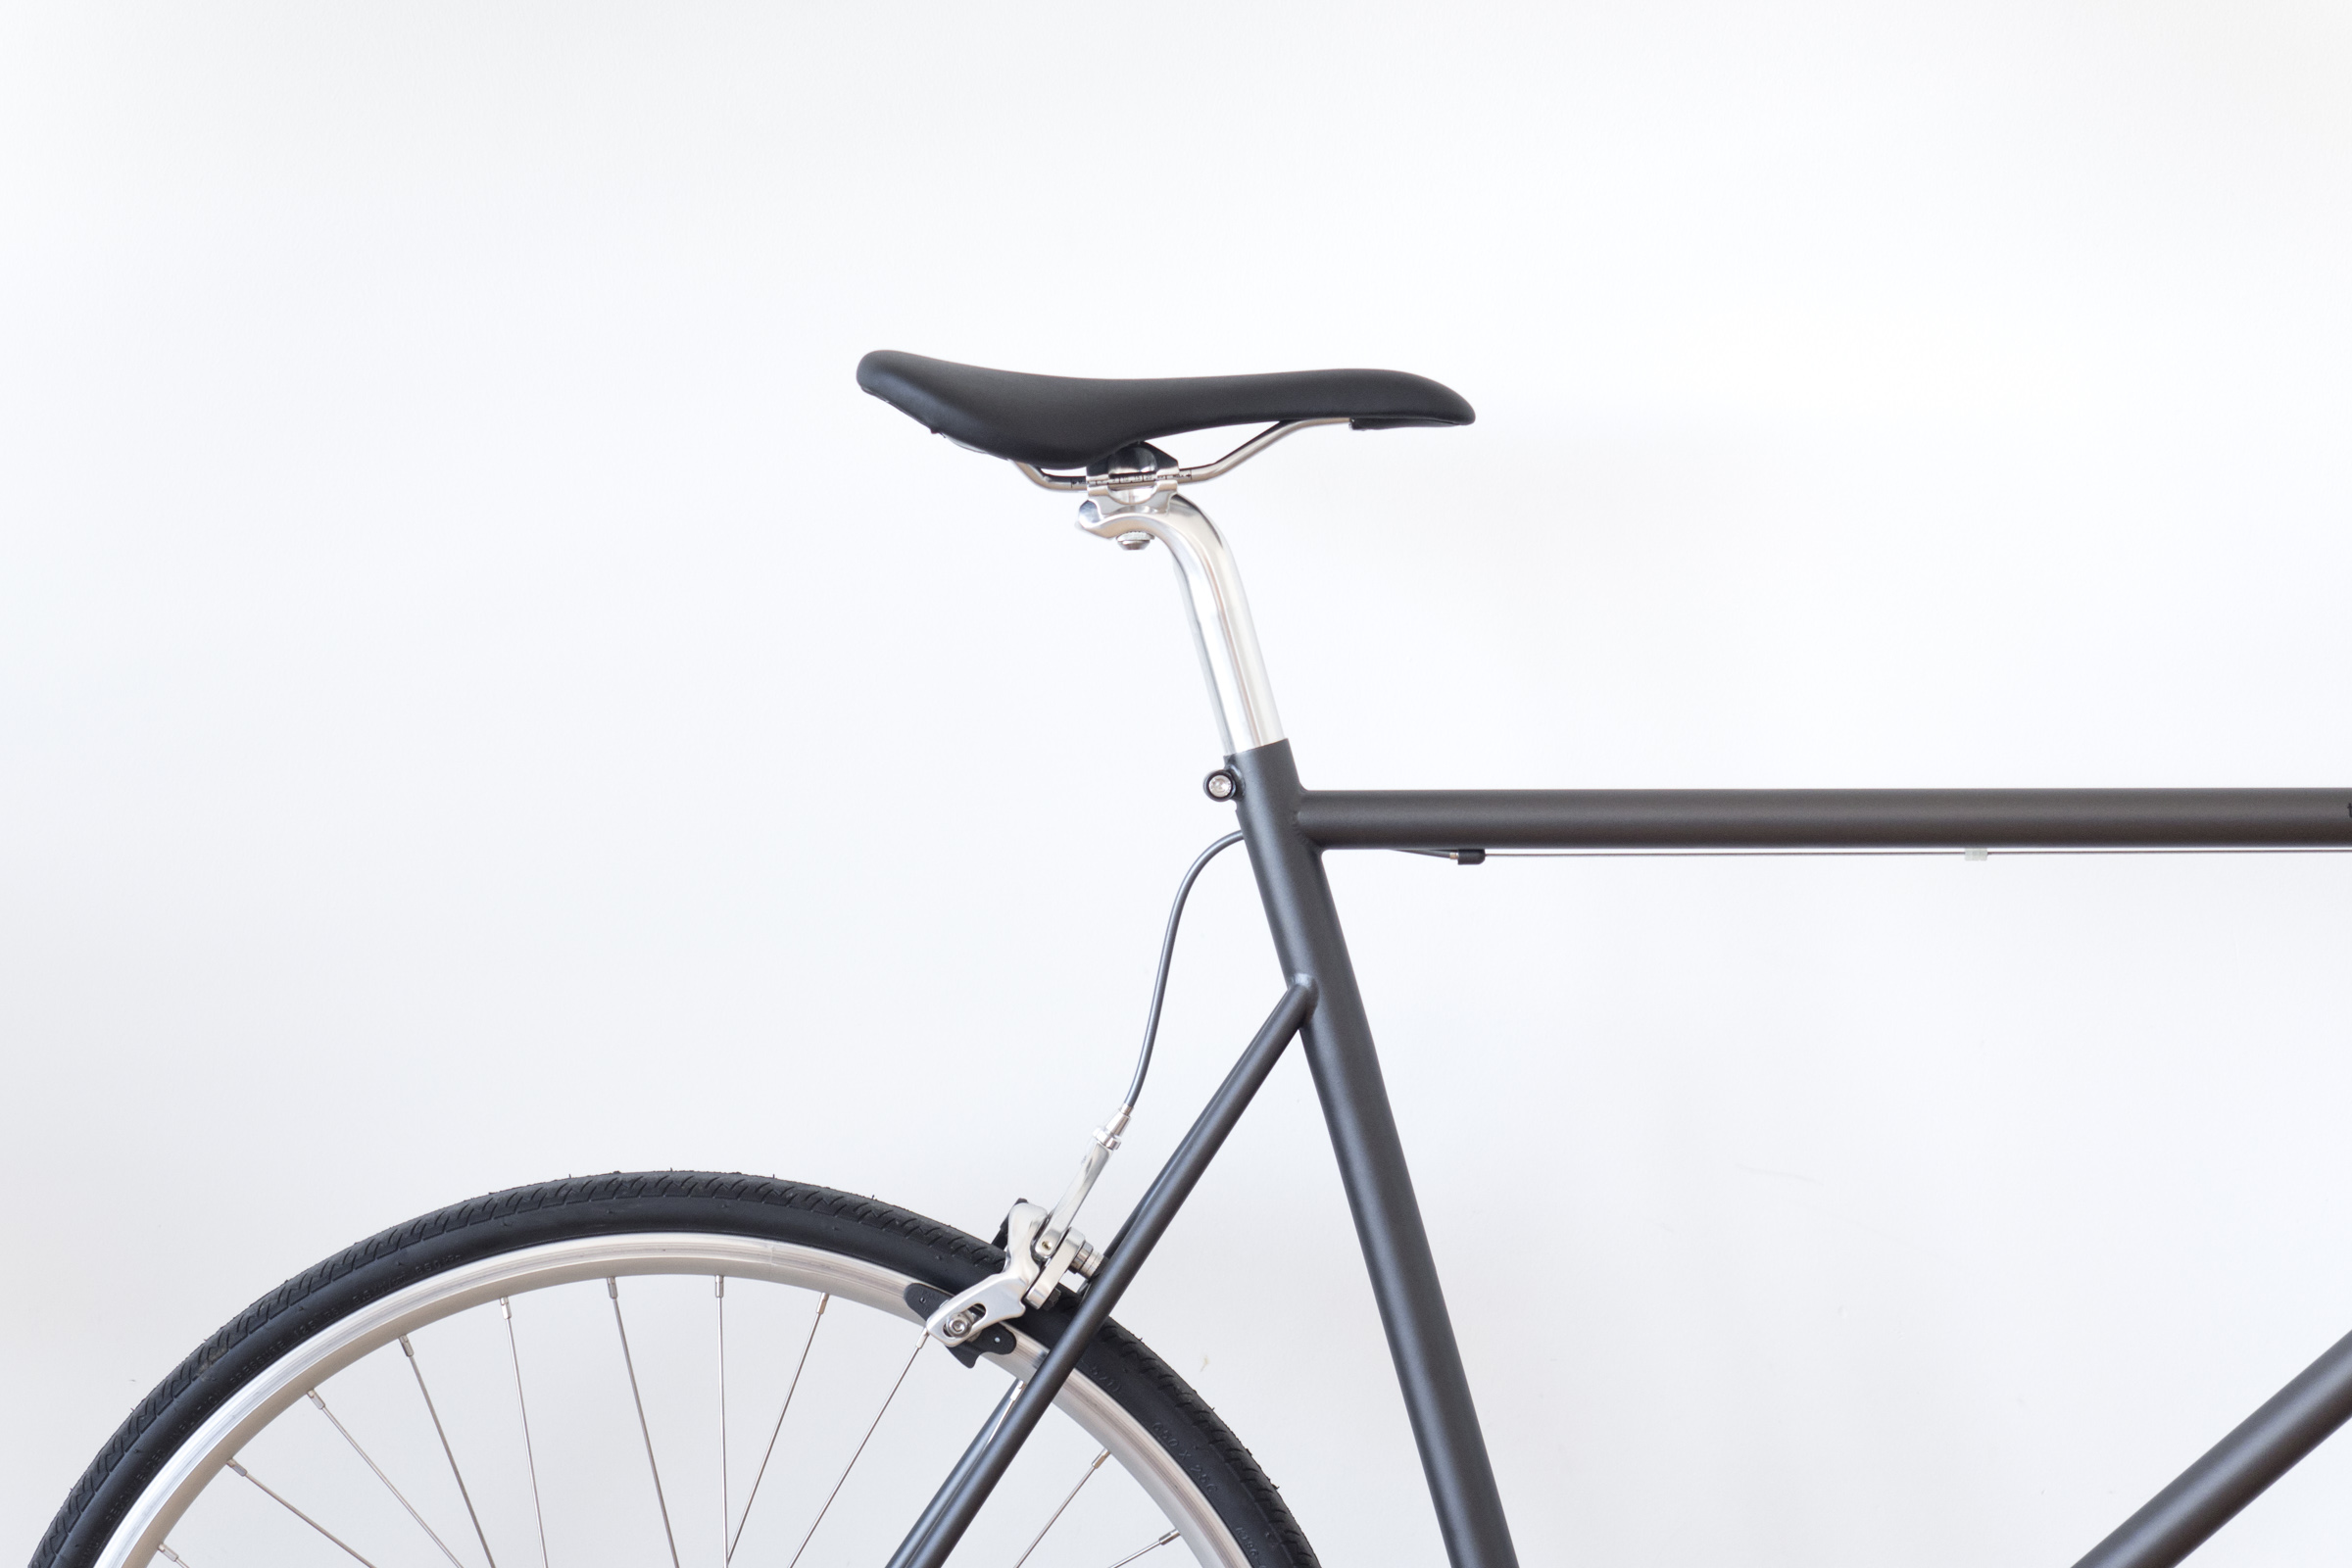 New Limited Edition Tokyobike Single Speed Model